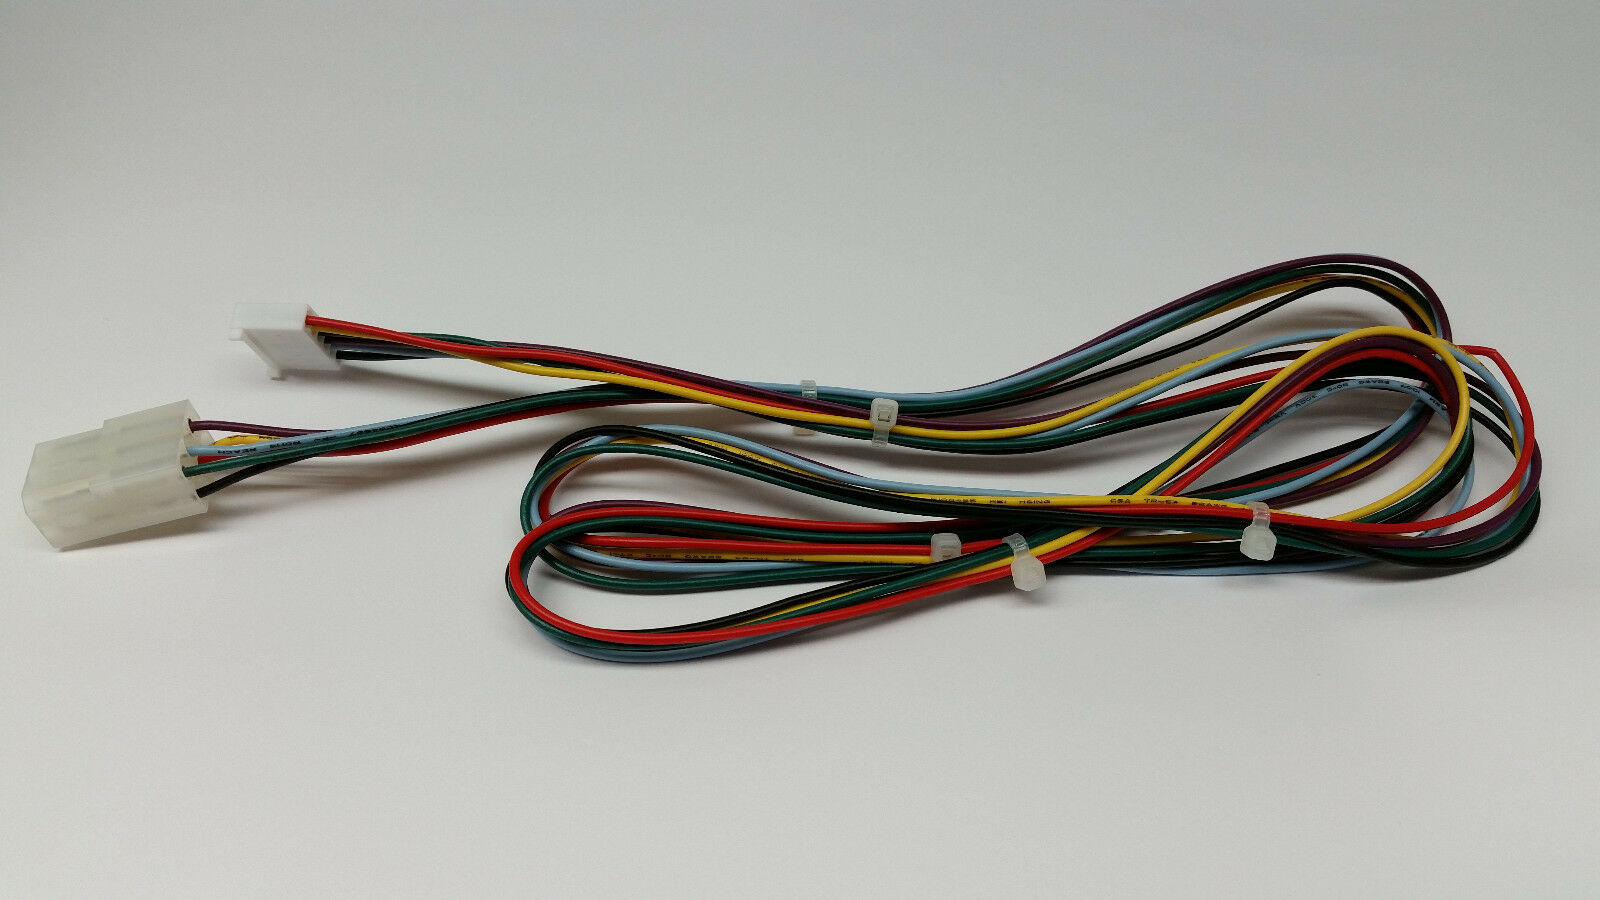 New Arcade Golden Tee Trackball To Pcb Harness 695 Picclick Icade Jamma Wiring 1 Of 1only Available